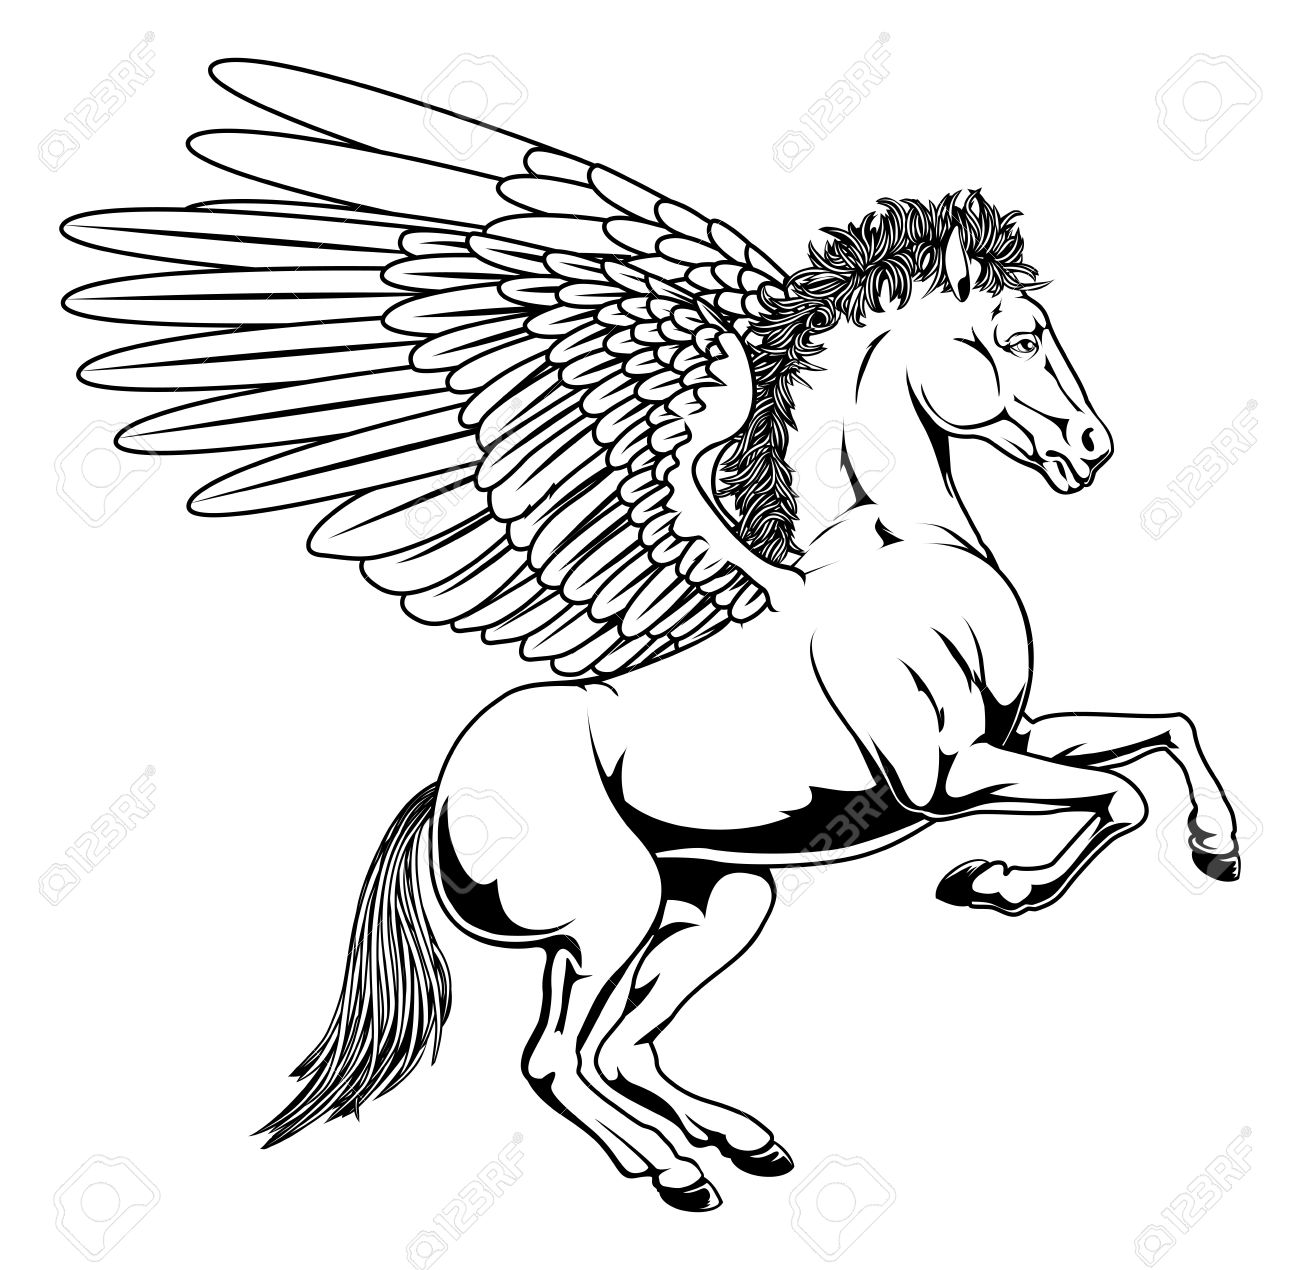 1300x1270 Pegasus Horse With Wings Rearing On Its Back Legs In Black